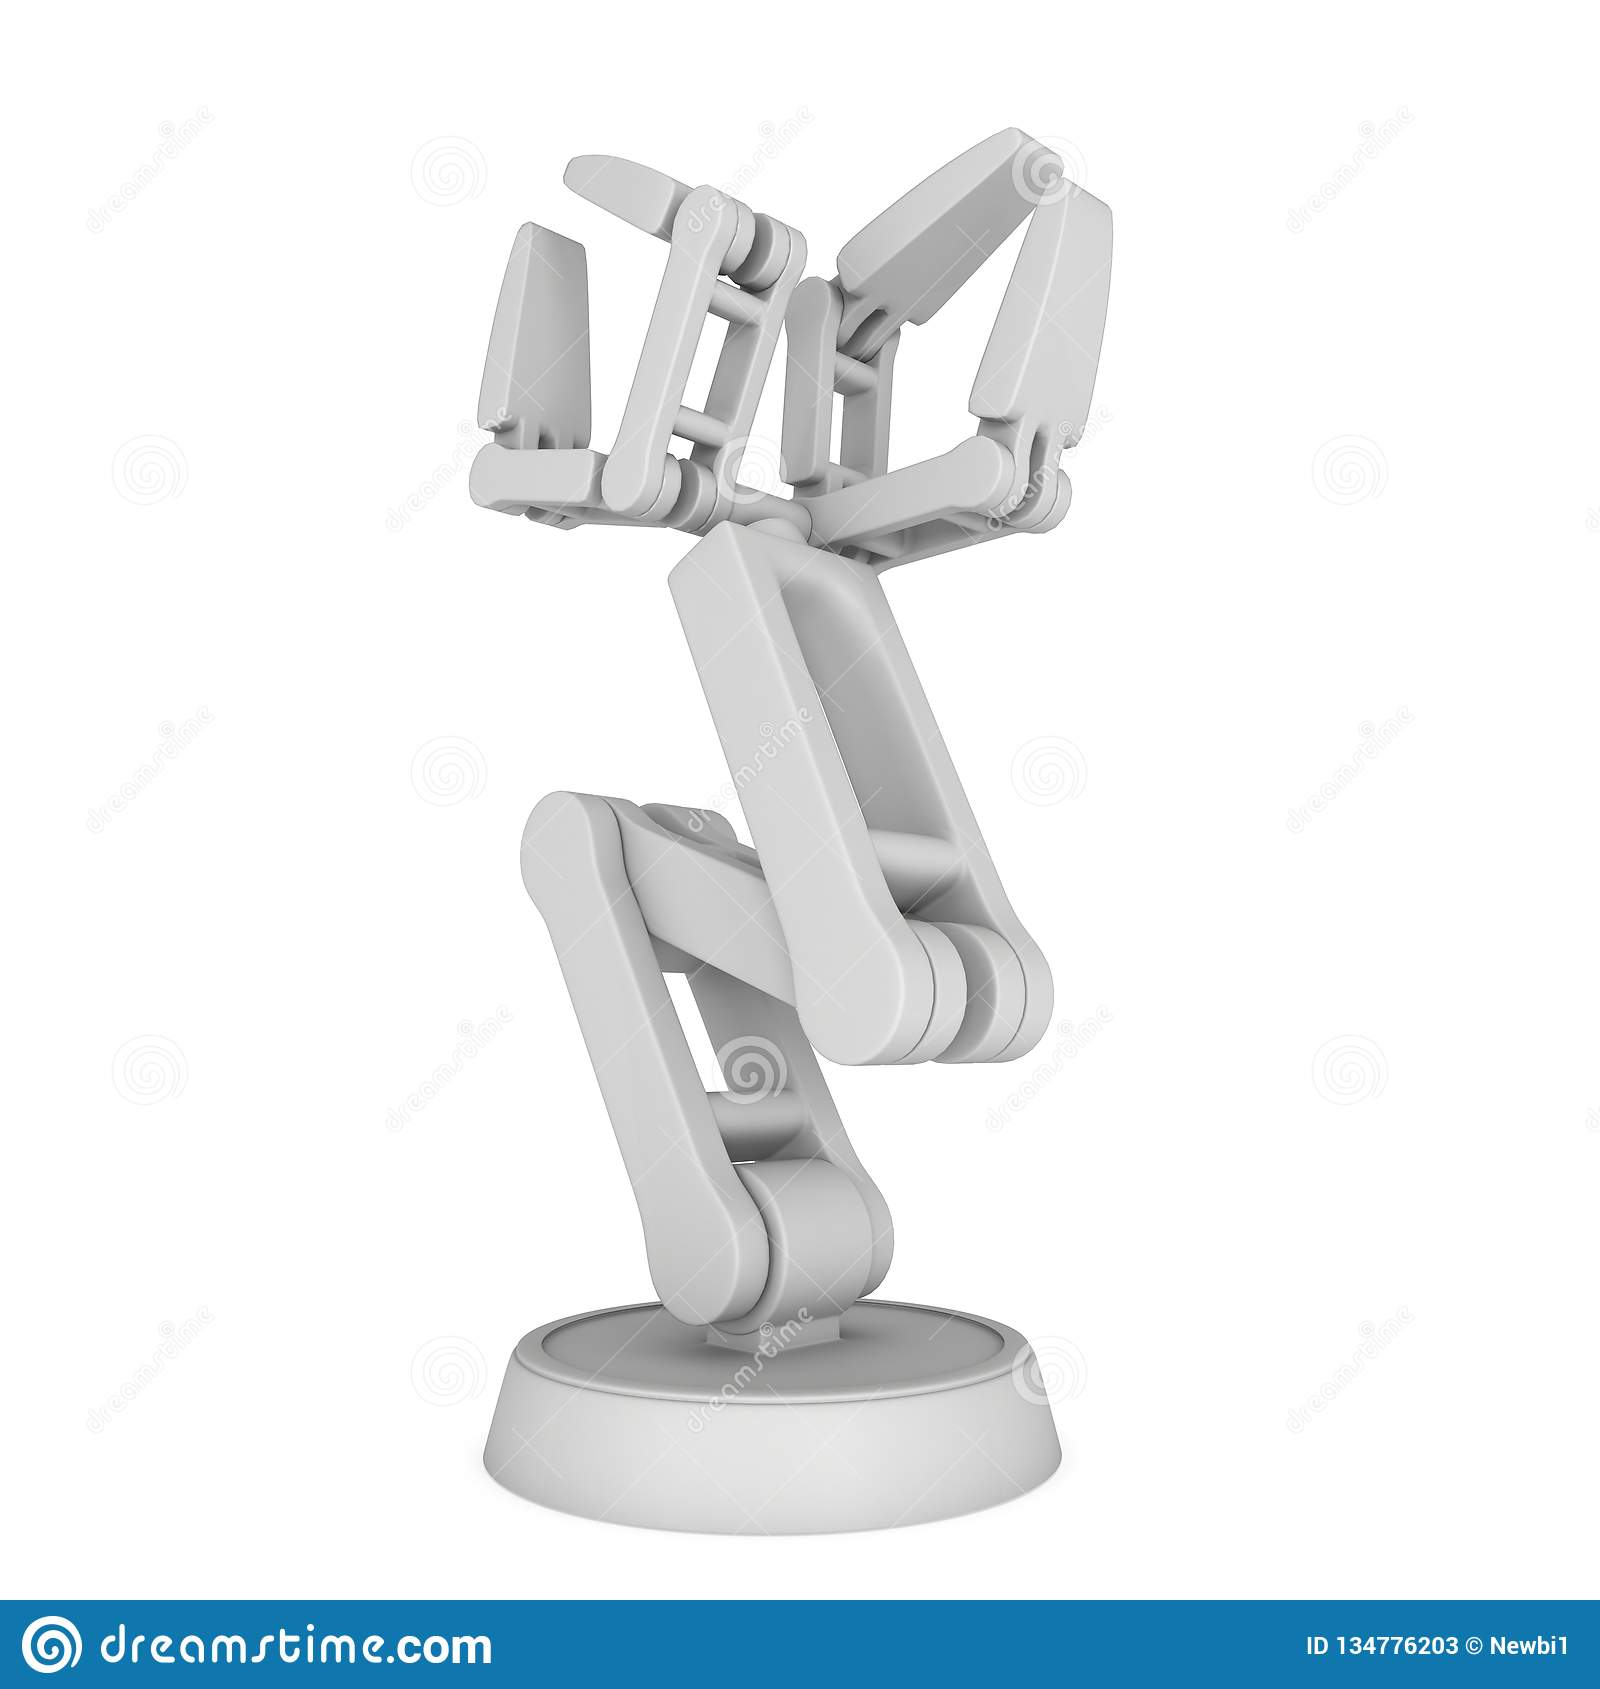 Robotic arm 3d stock illustration  Illustration of design - 134776203